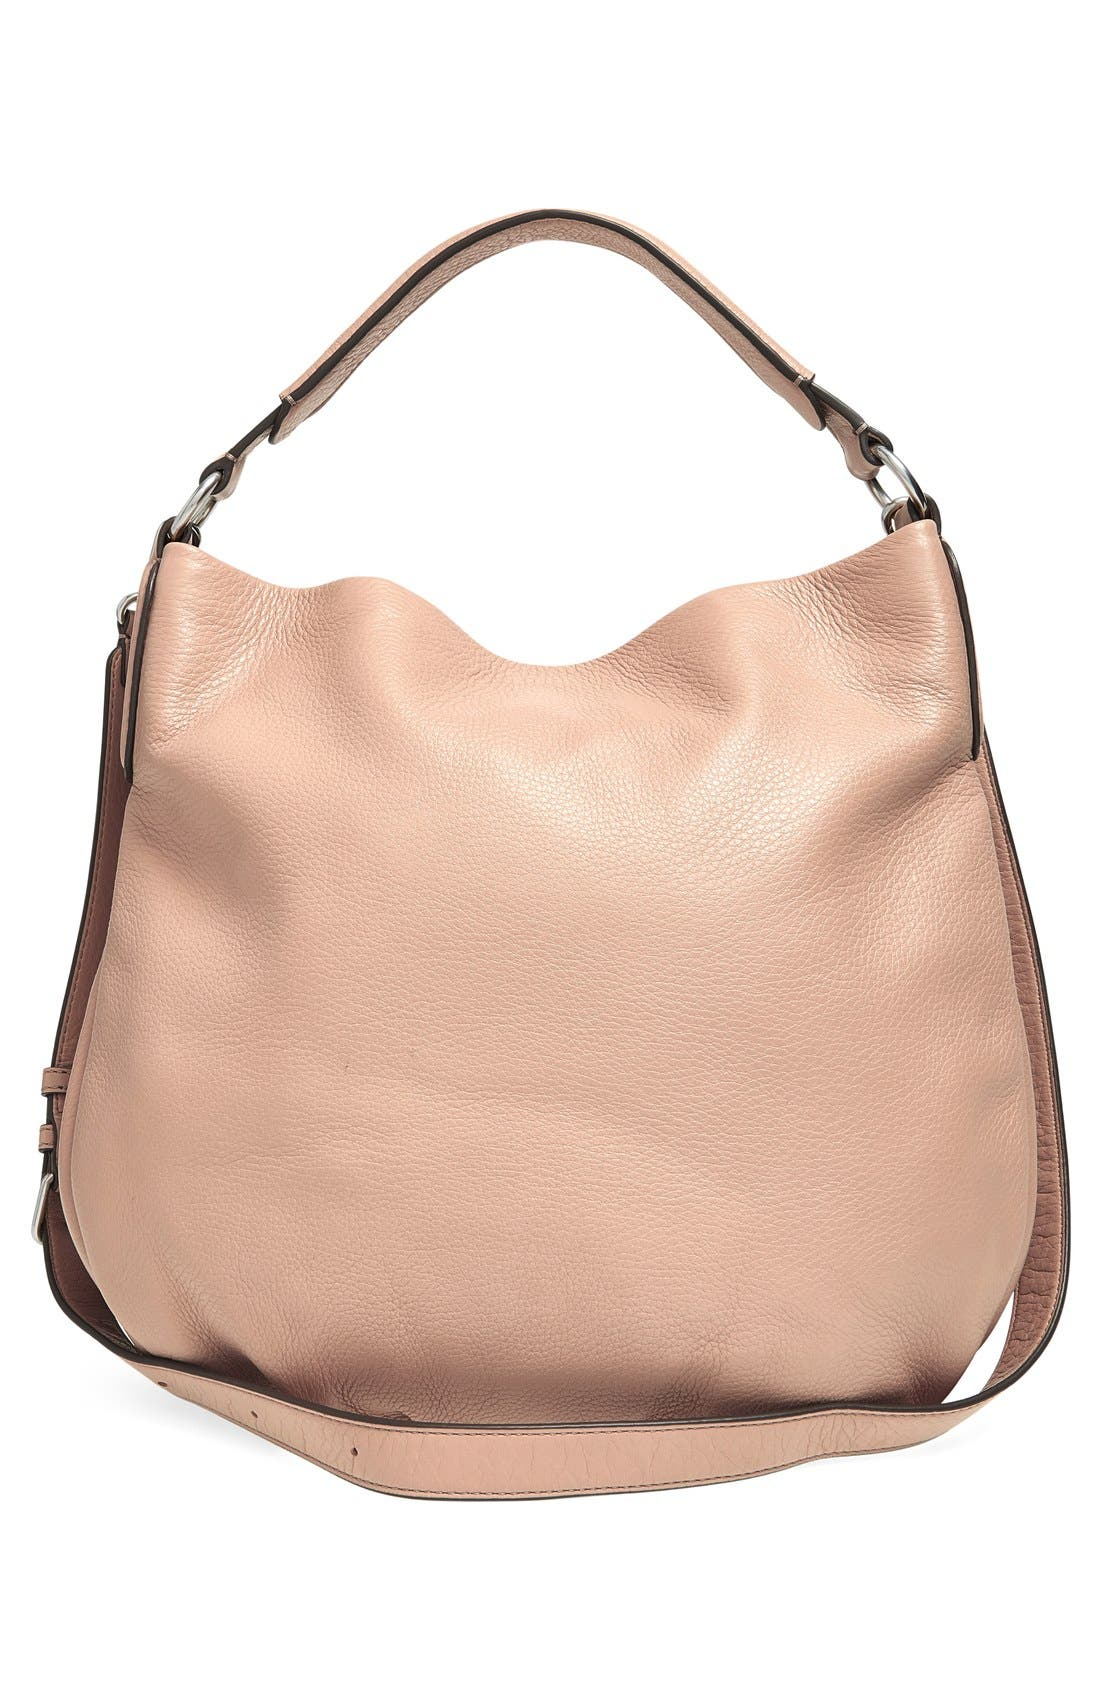 MARC BY MARC JACOBS 'New Q Hillier' Hobo,                             Alternate thumbnail 6, color,                             Cameo Nude